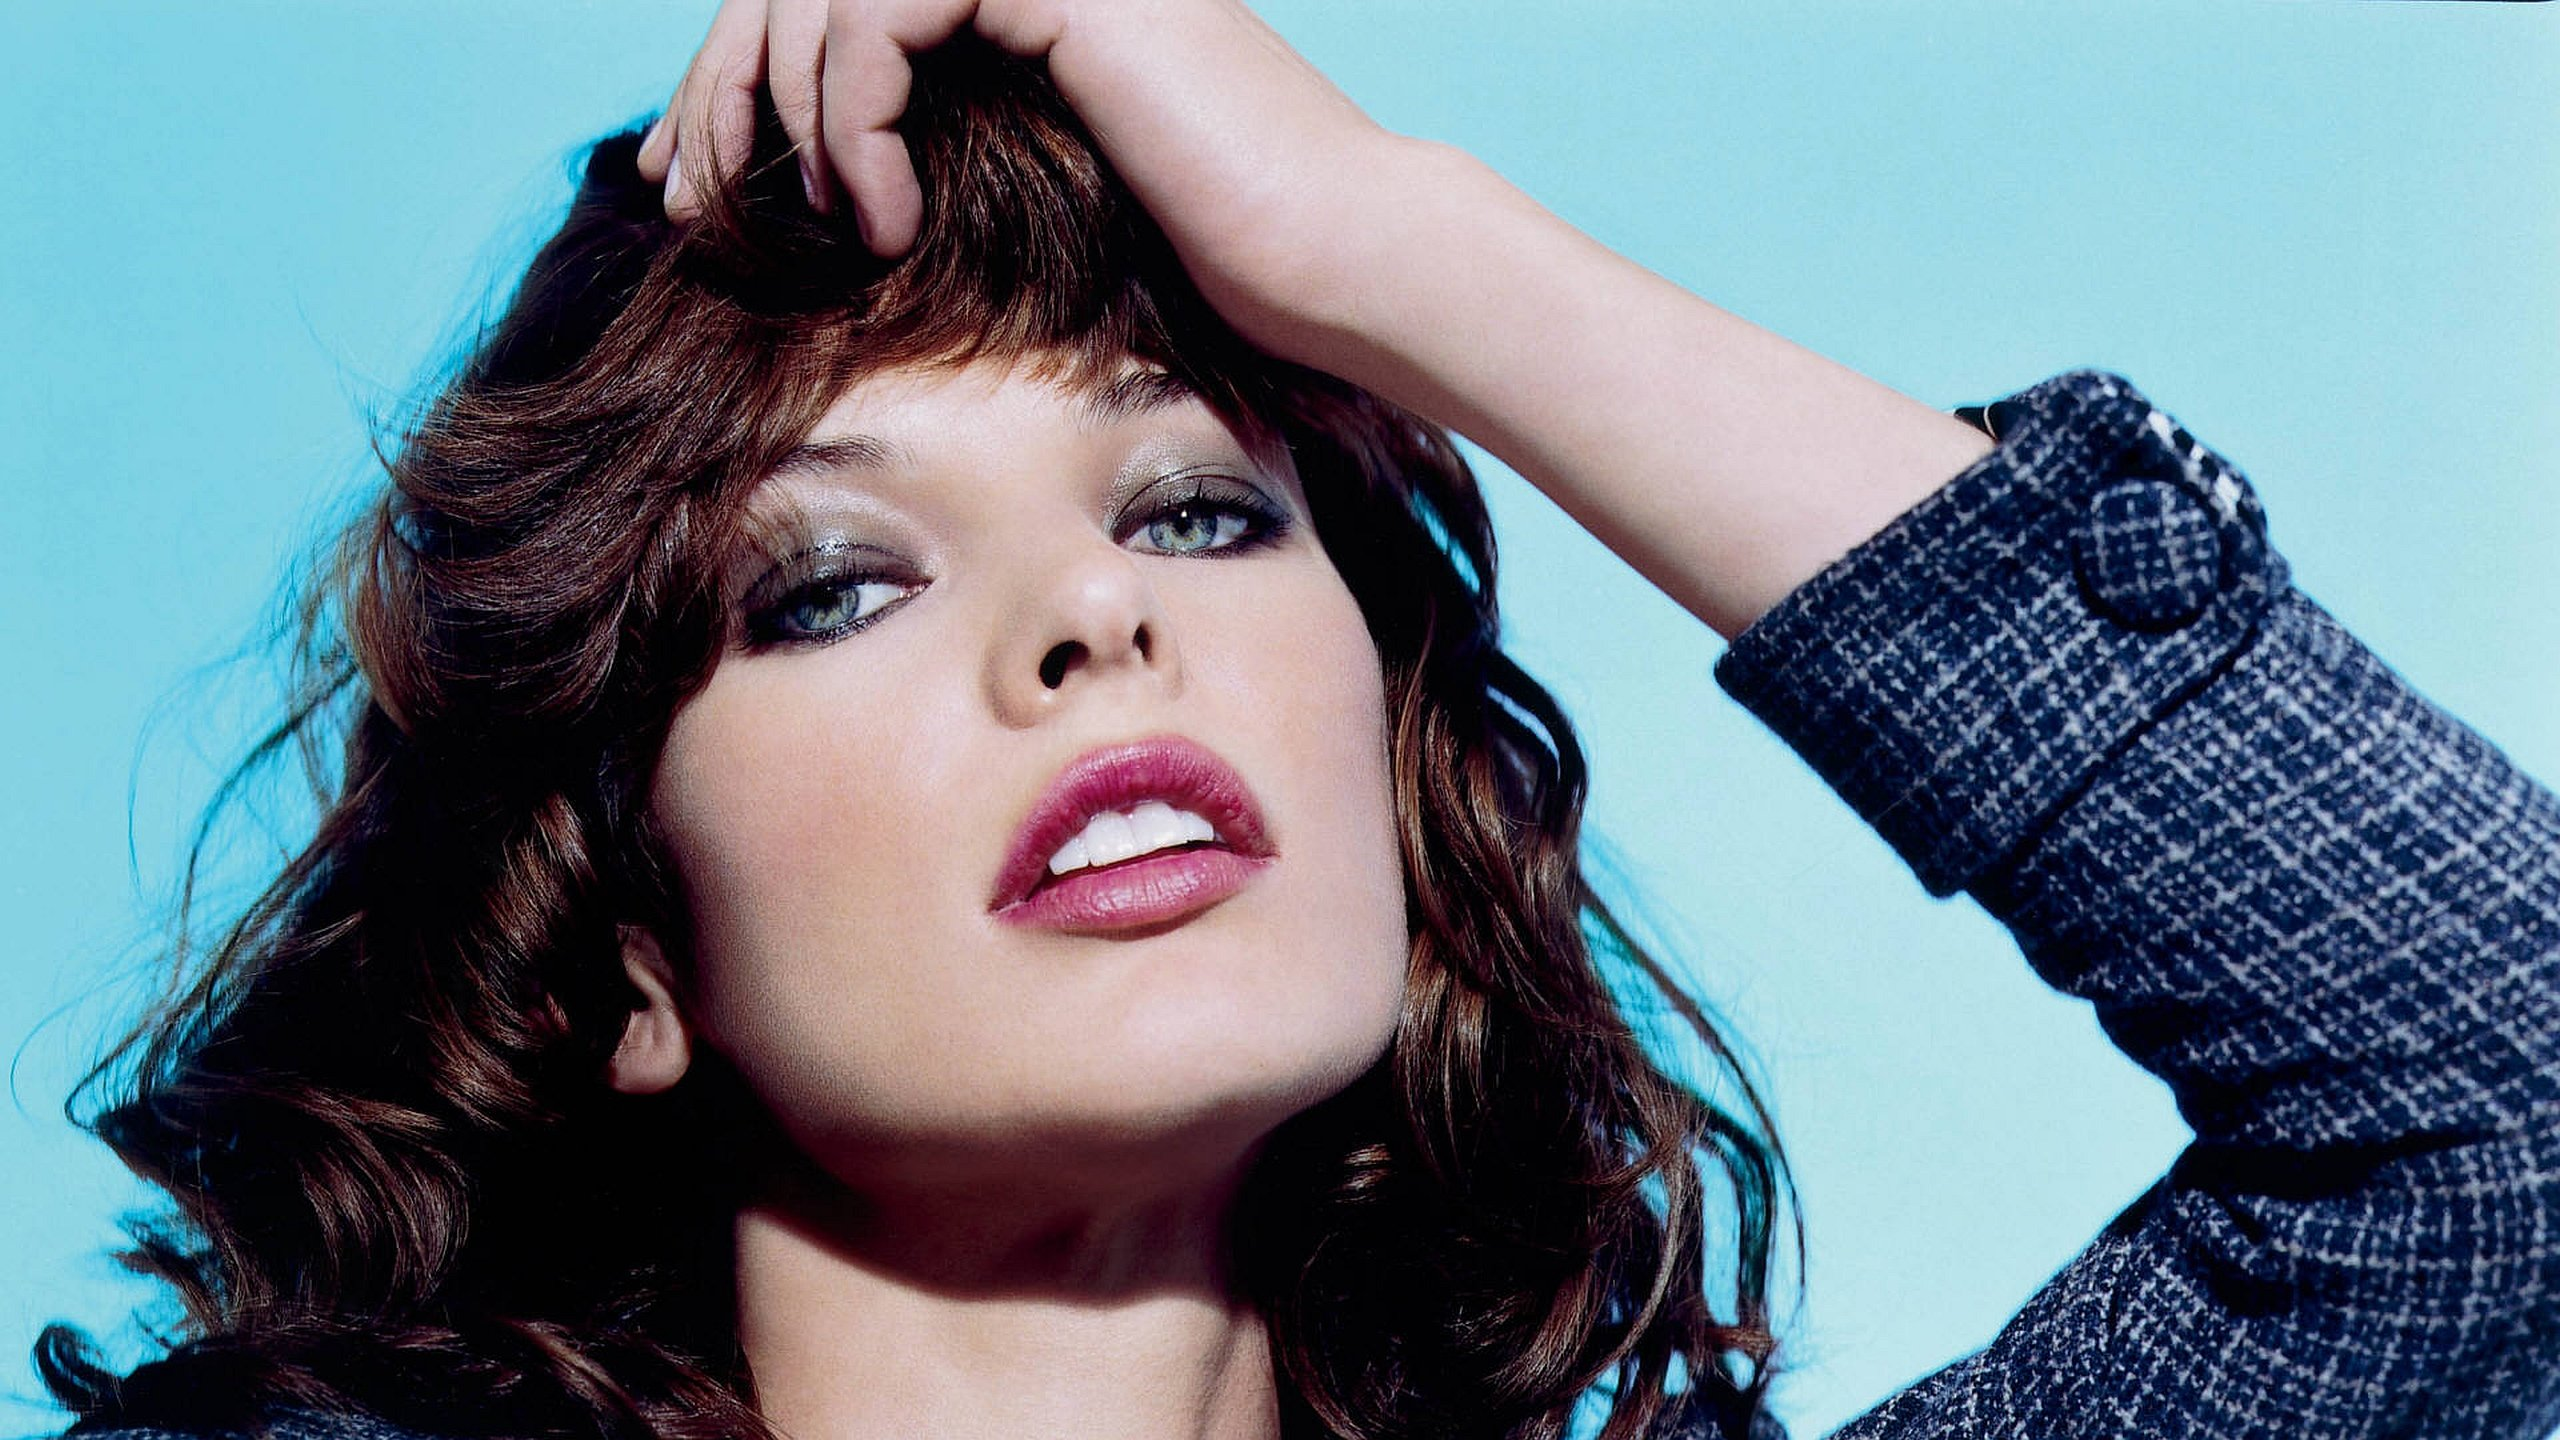 Download hd 2560x1440 Milla Jovovich desktop wallpaper ID:270668 for free